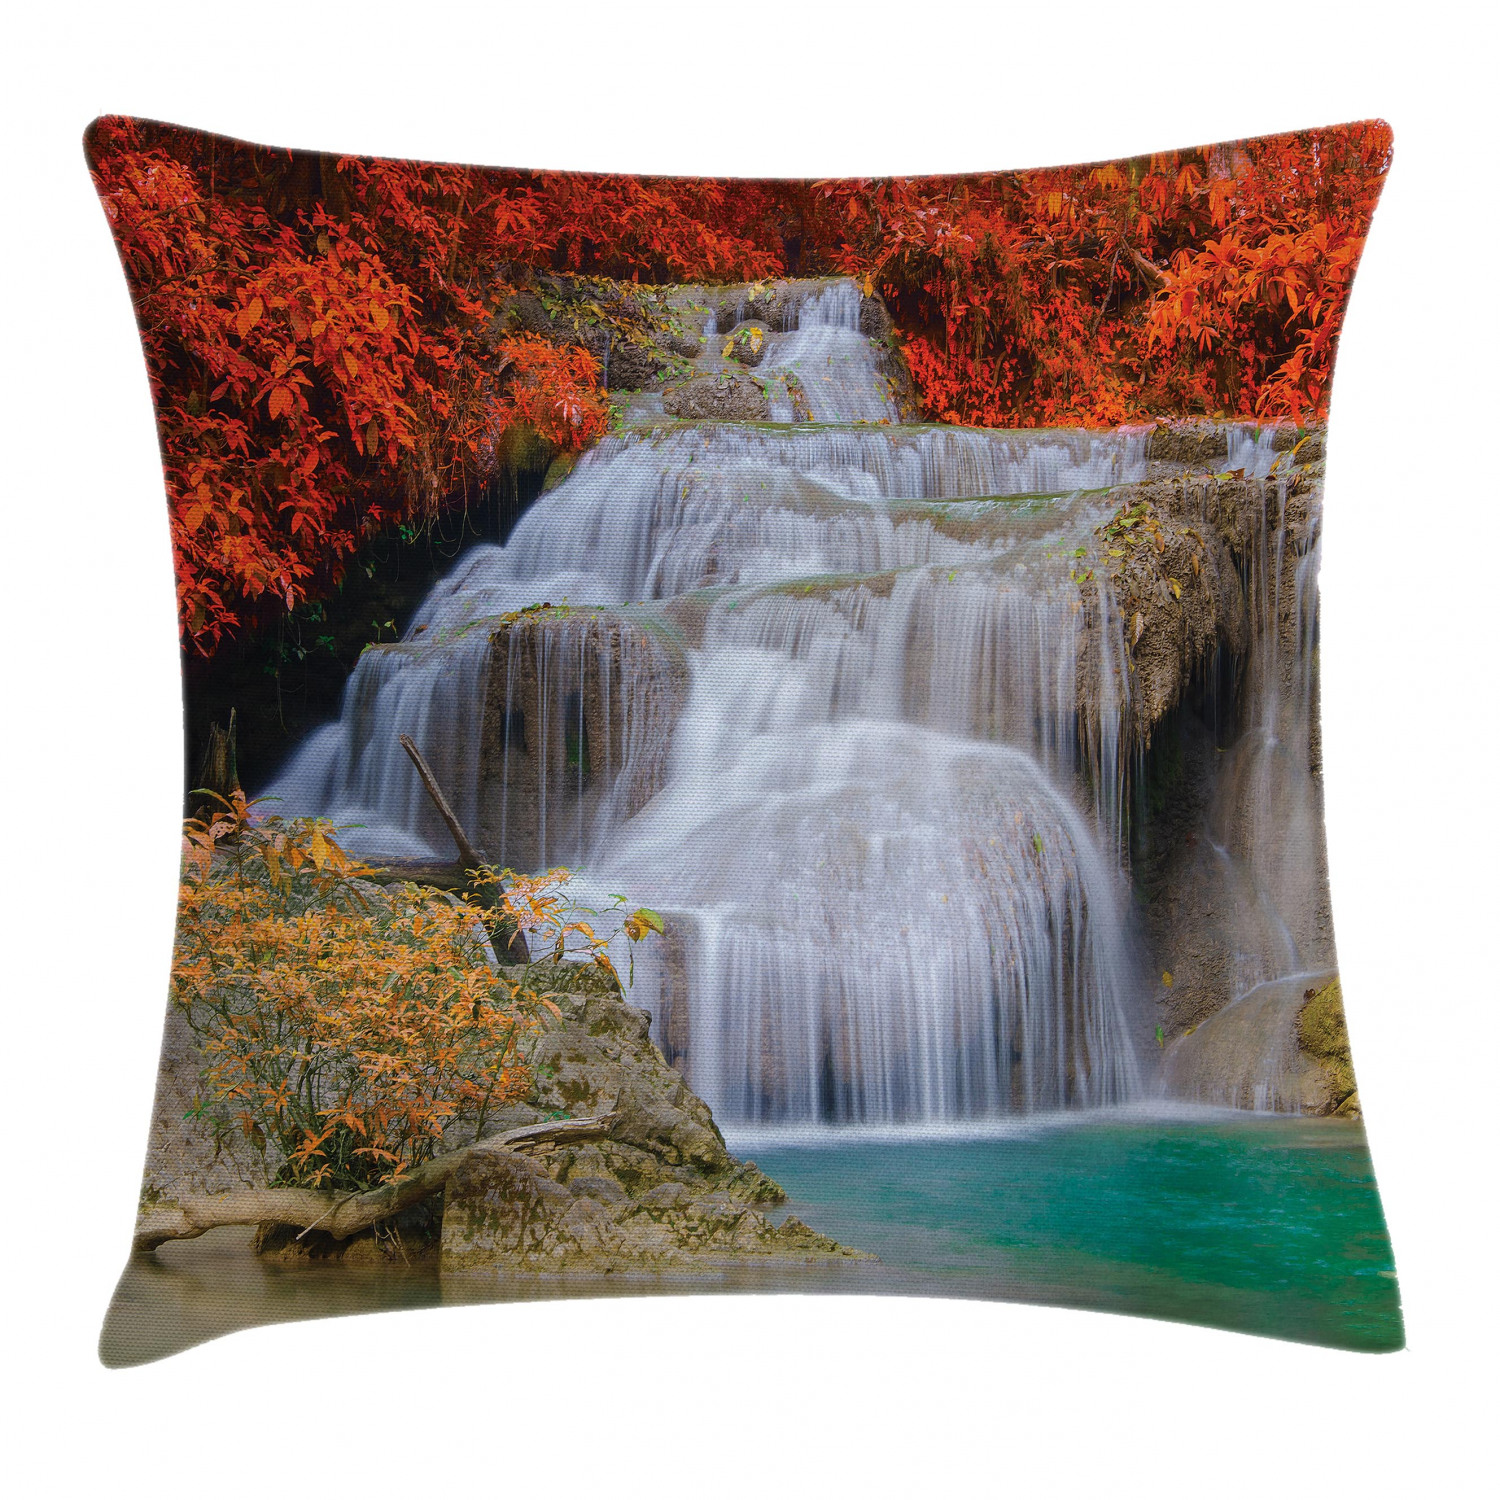 Waterfall Decor Throw Pillow Cushion Cover Lake Landscape Forest Surrounded By Autumn Leaves On Fall Trees Decorative Square Accent Pillow Case 16 X 16 Inches Blue White And Orange By Ambesonne